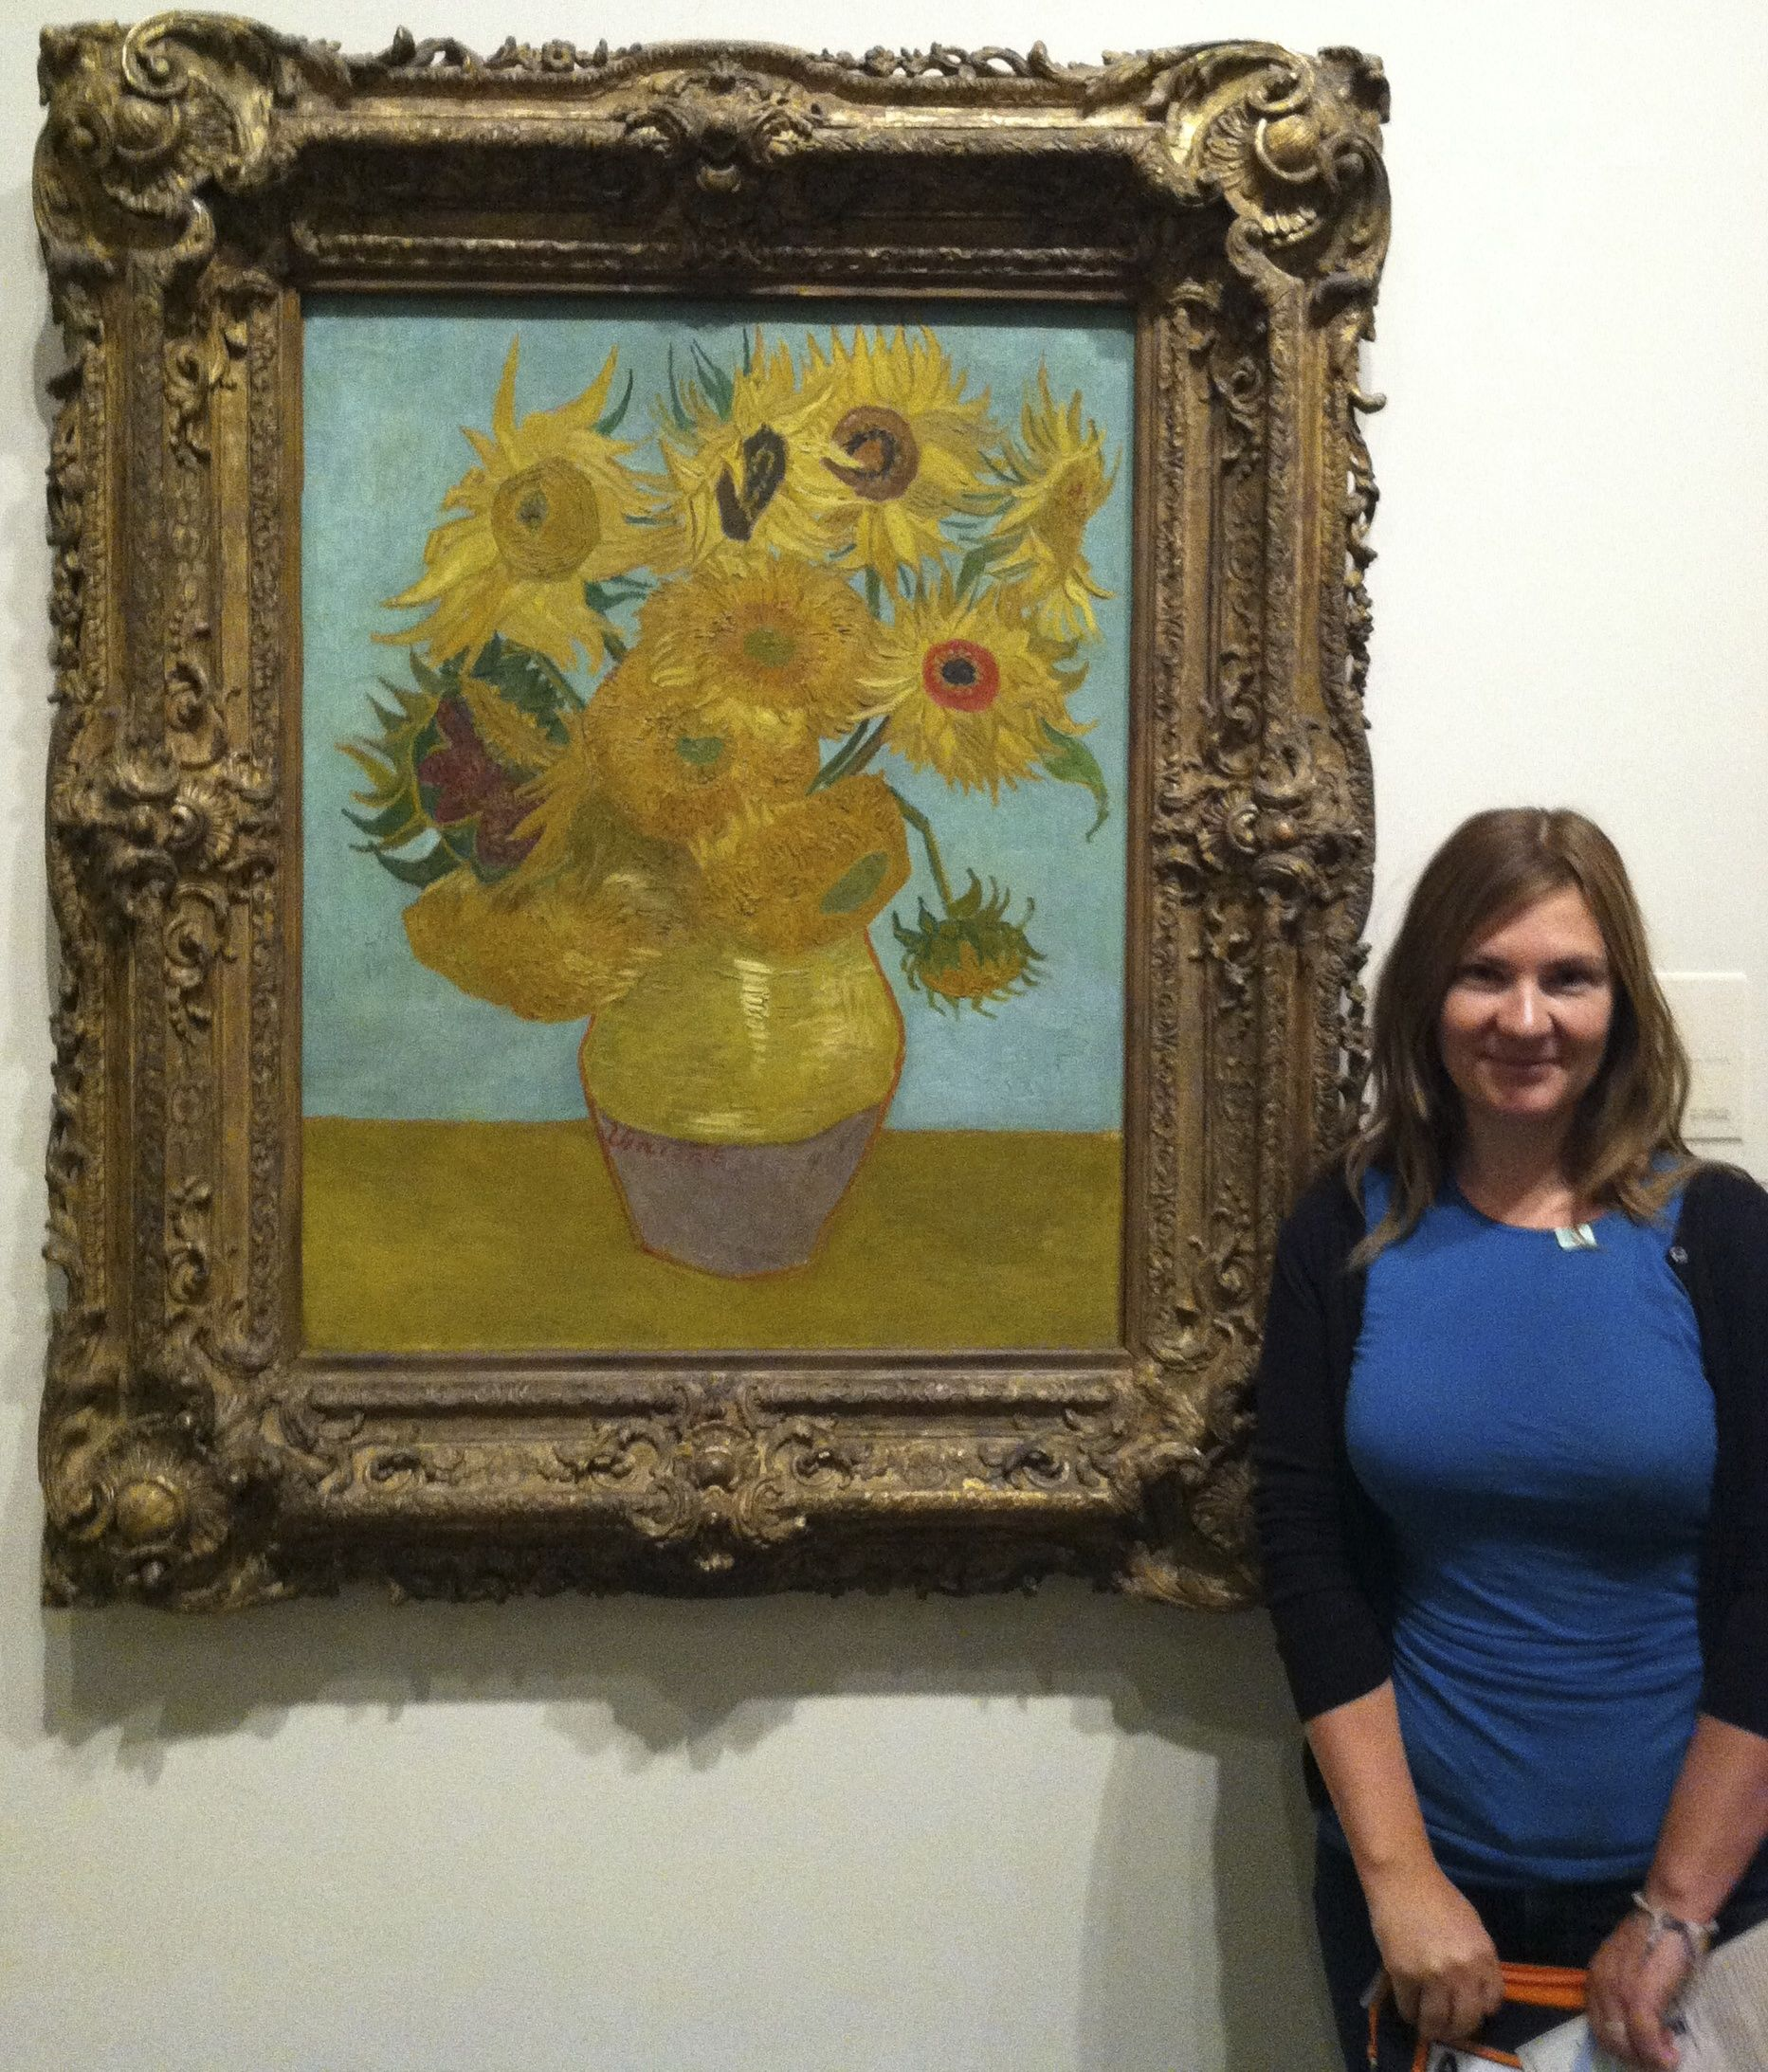 Van Gogh's Sunflowers in Philadelphia.  Traveling to see historical art is a new pursuit.